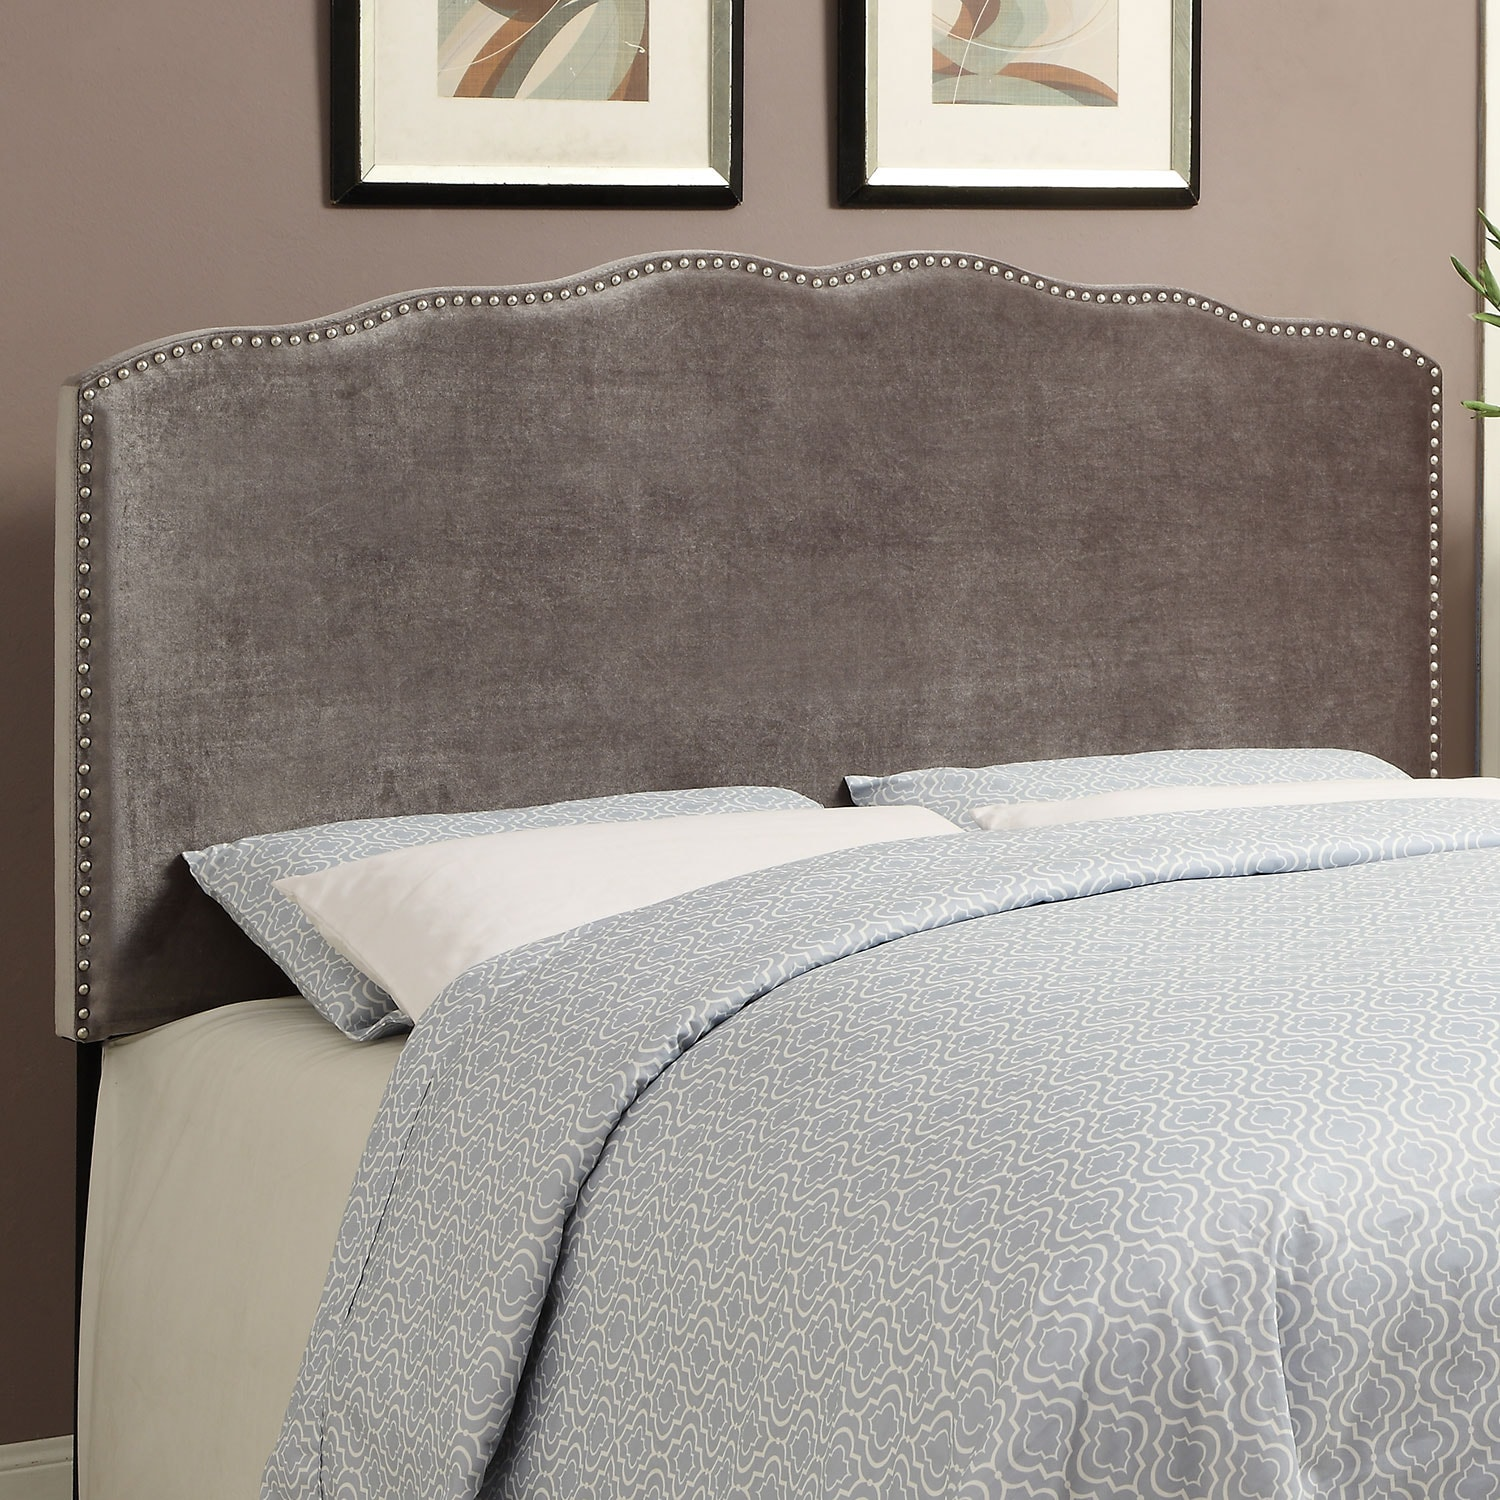 Bedroom Furniture - Layla Upholstered Headboard